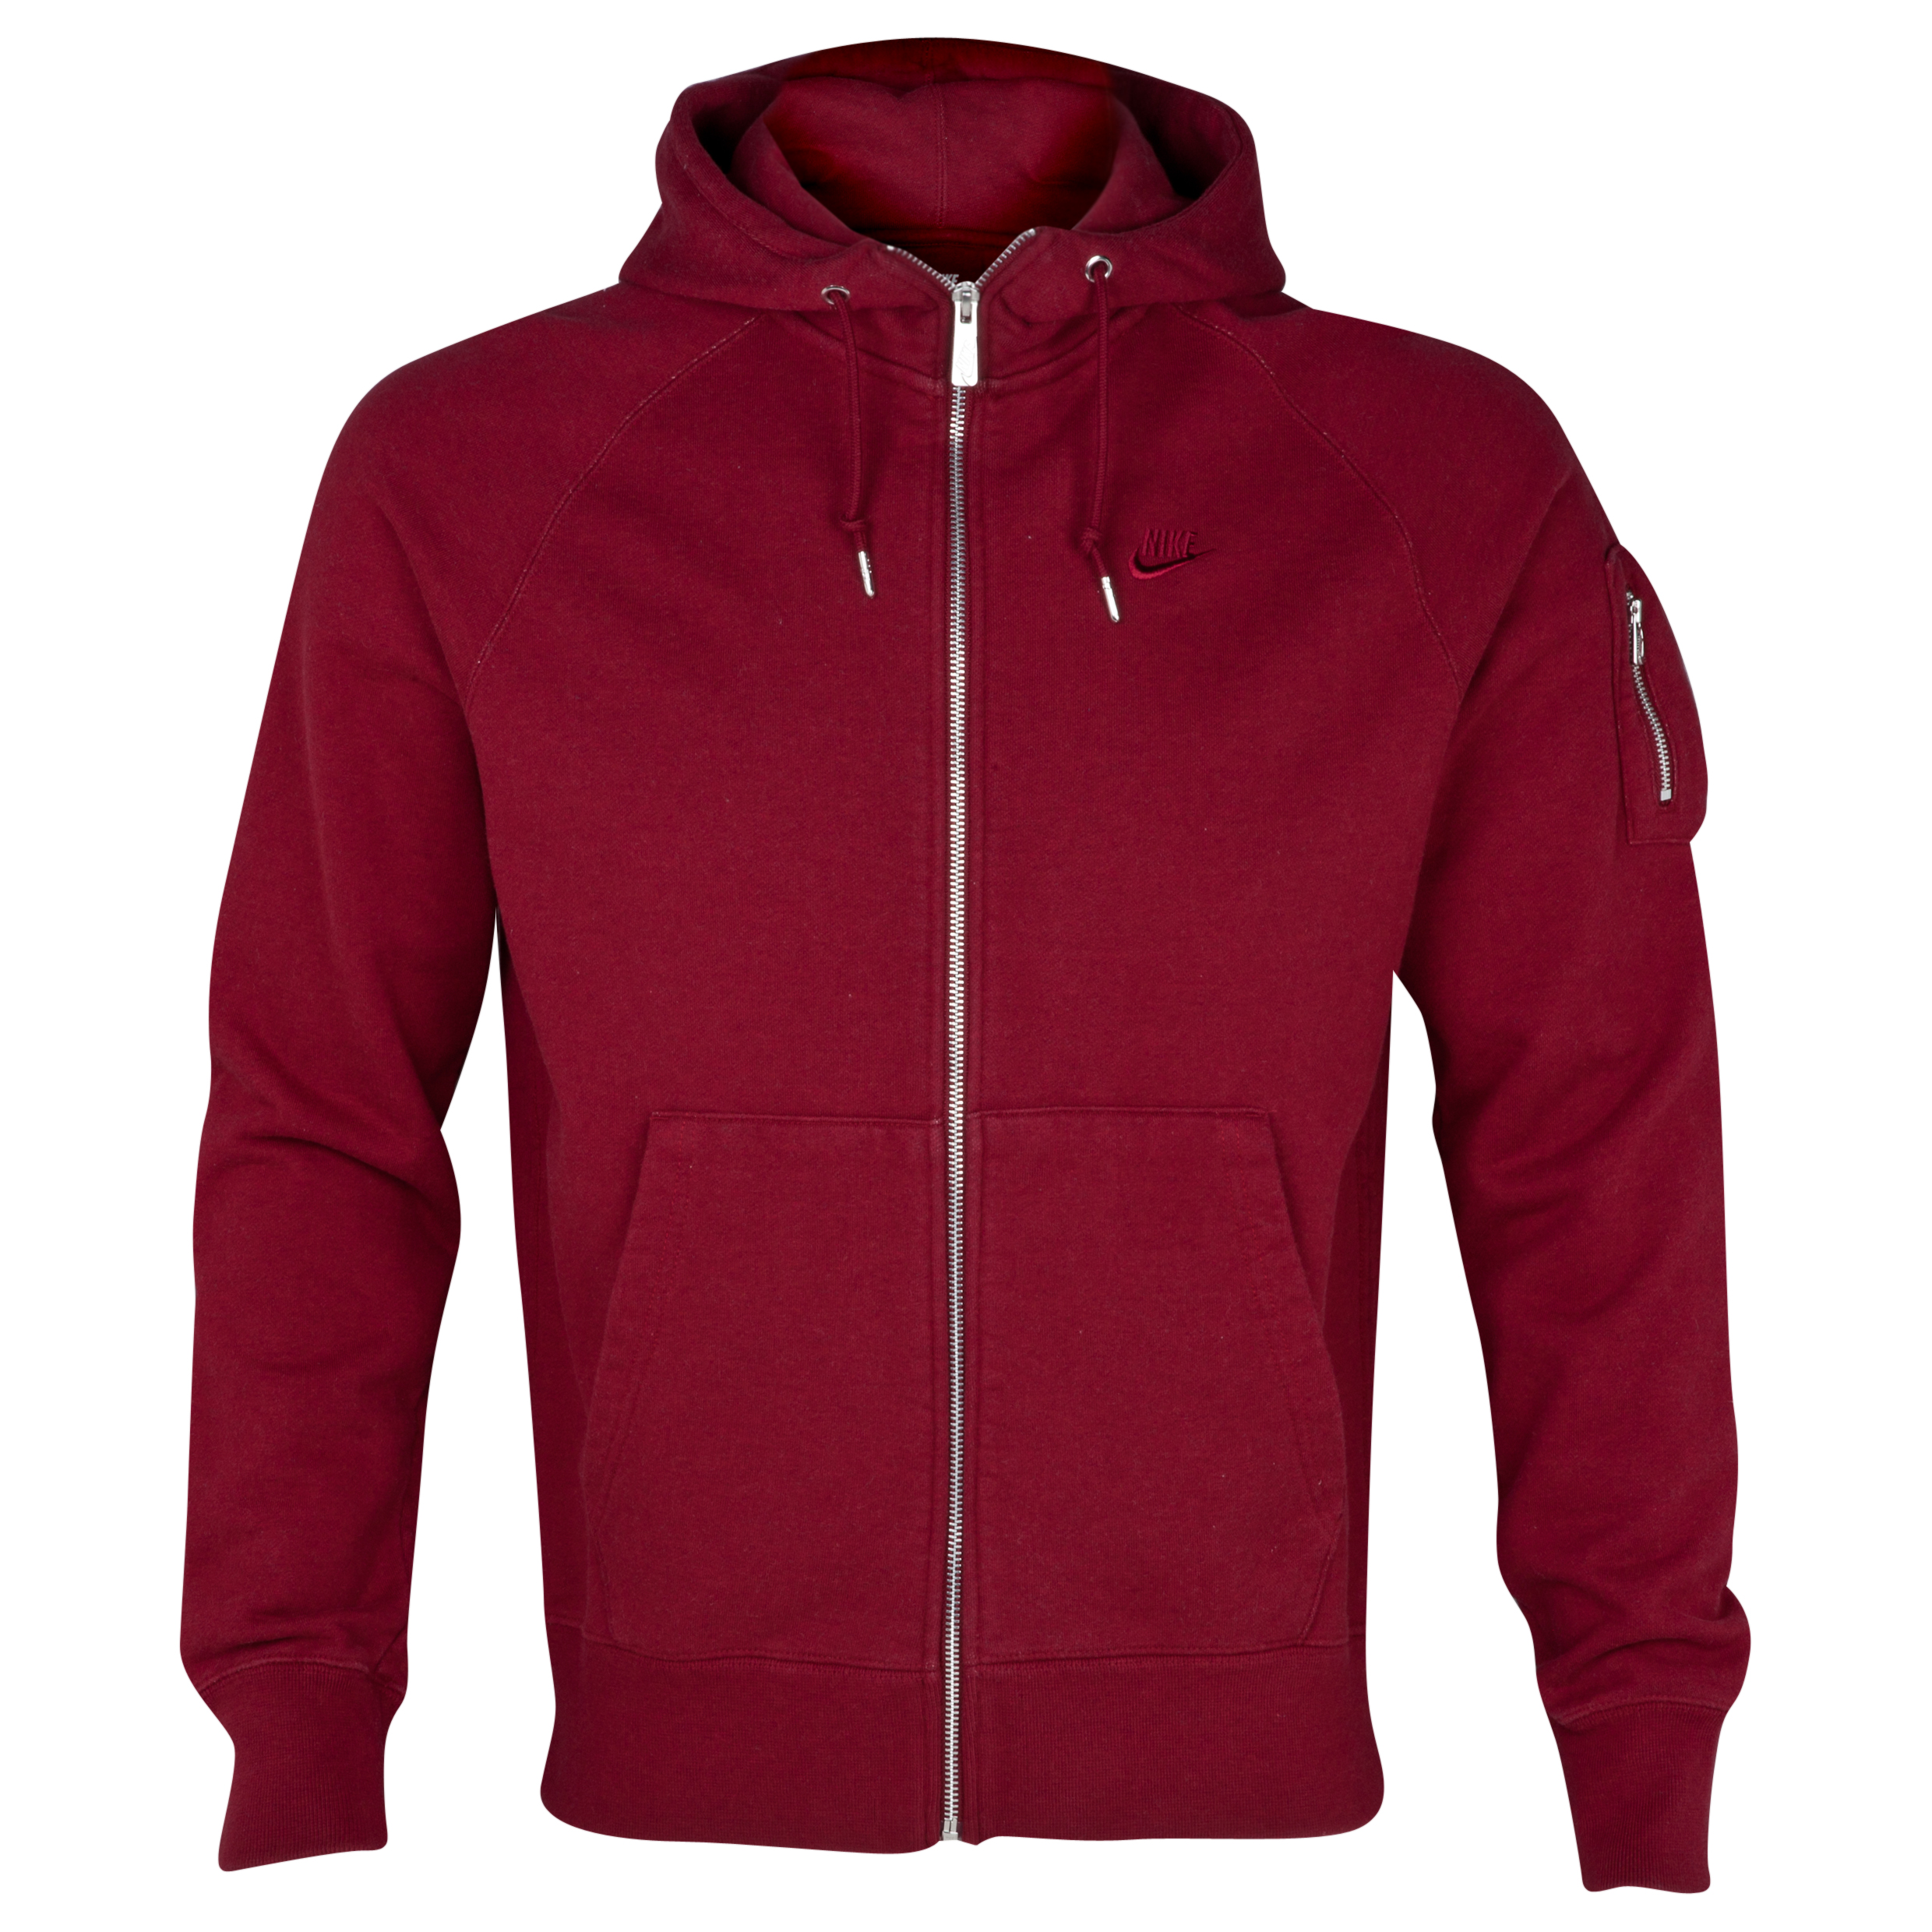 Nike AW77 Stadium FZ Hoody - Med Team Red Heather